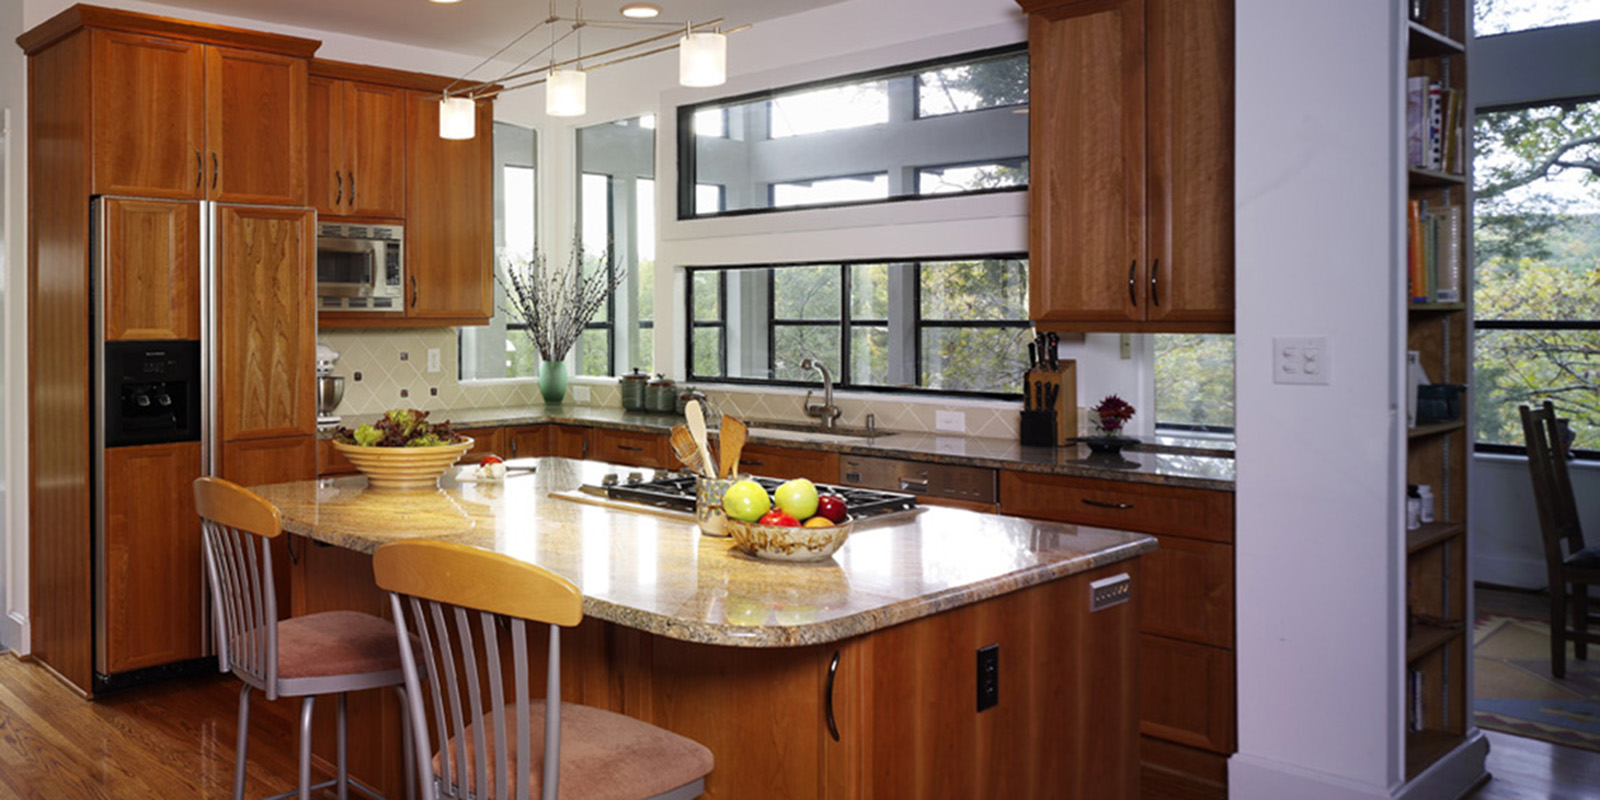 Kitchen Cabinet Showroom Raleigh Nc The Kitchen Specialist Custom Cabinet Showroom Serving